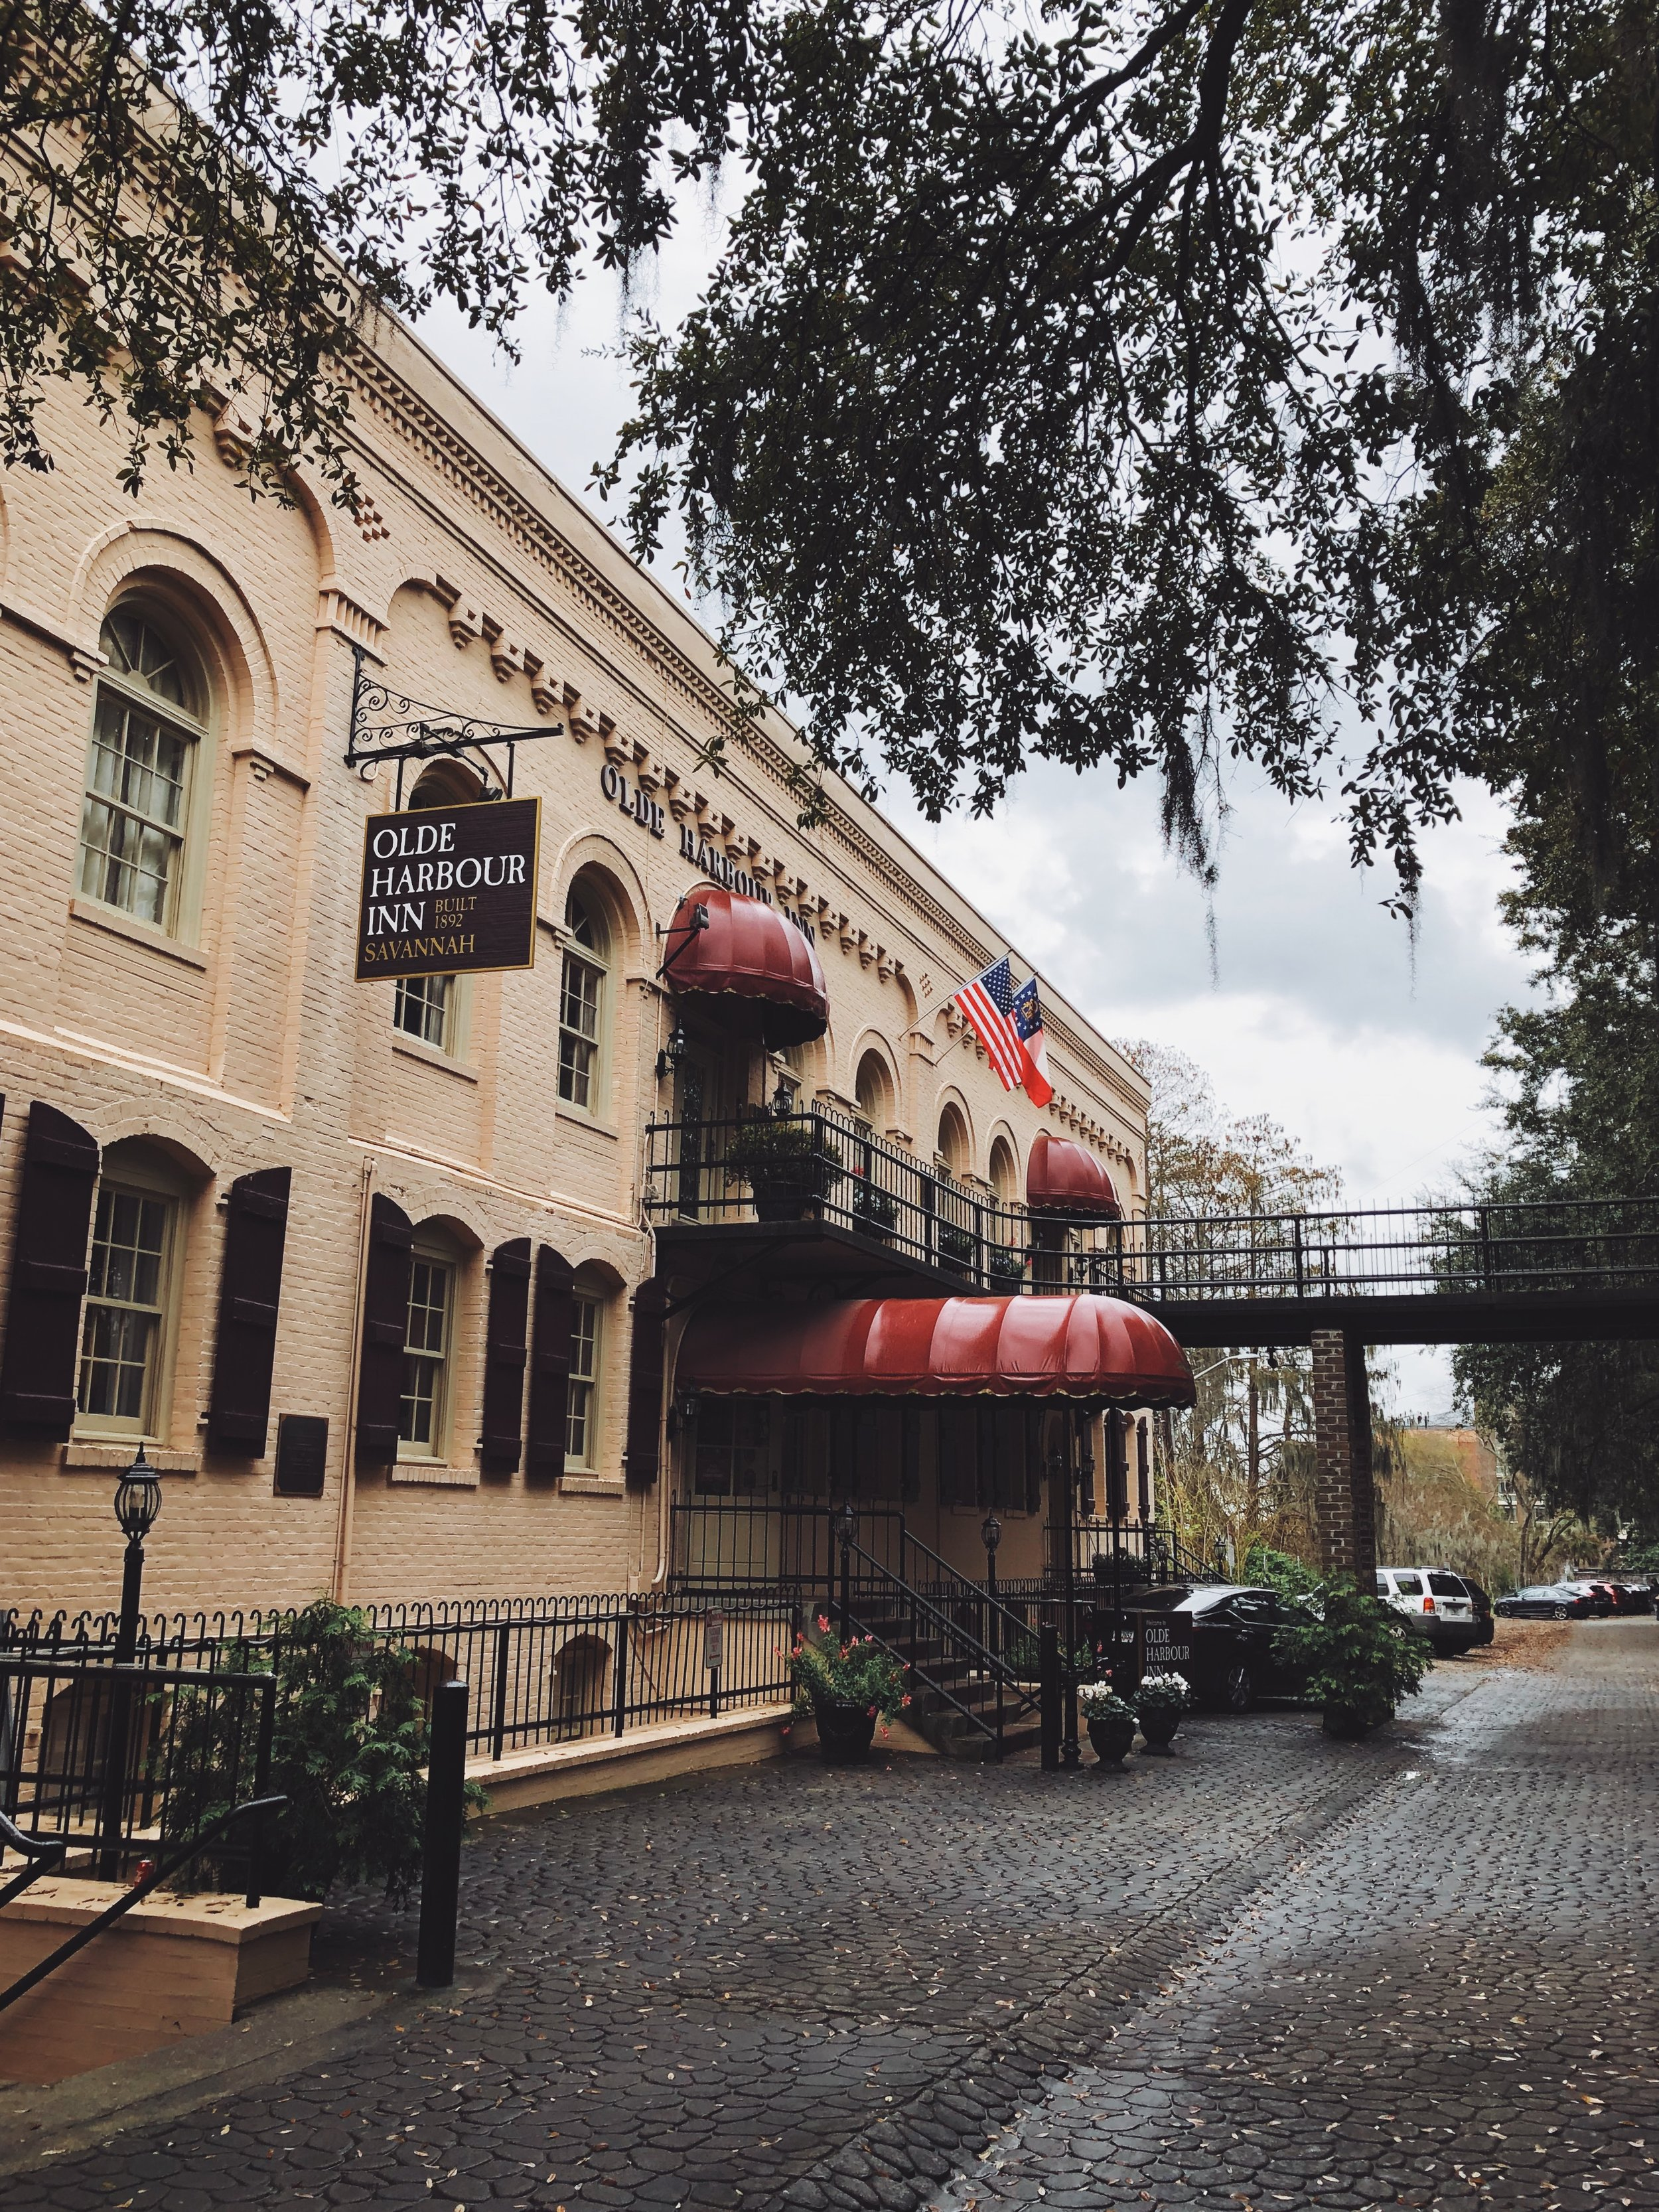 - Our hotel in Savannah, The Olde Harbour Inn, was so charming! It was right next to the riverwalk, which is a cute (touristy) area of town to walk around. There was lots of live music spilling out of the bars at night (but we couldn't hear it from our hotel room!)